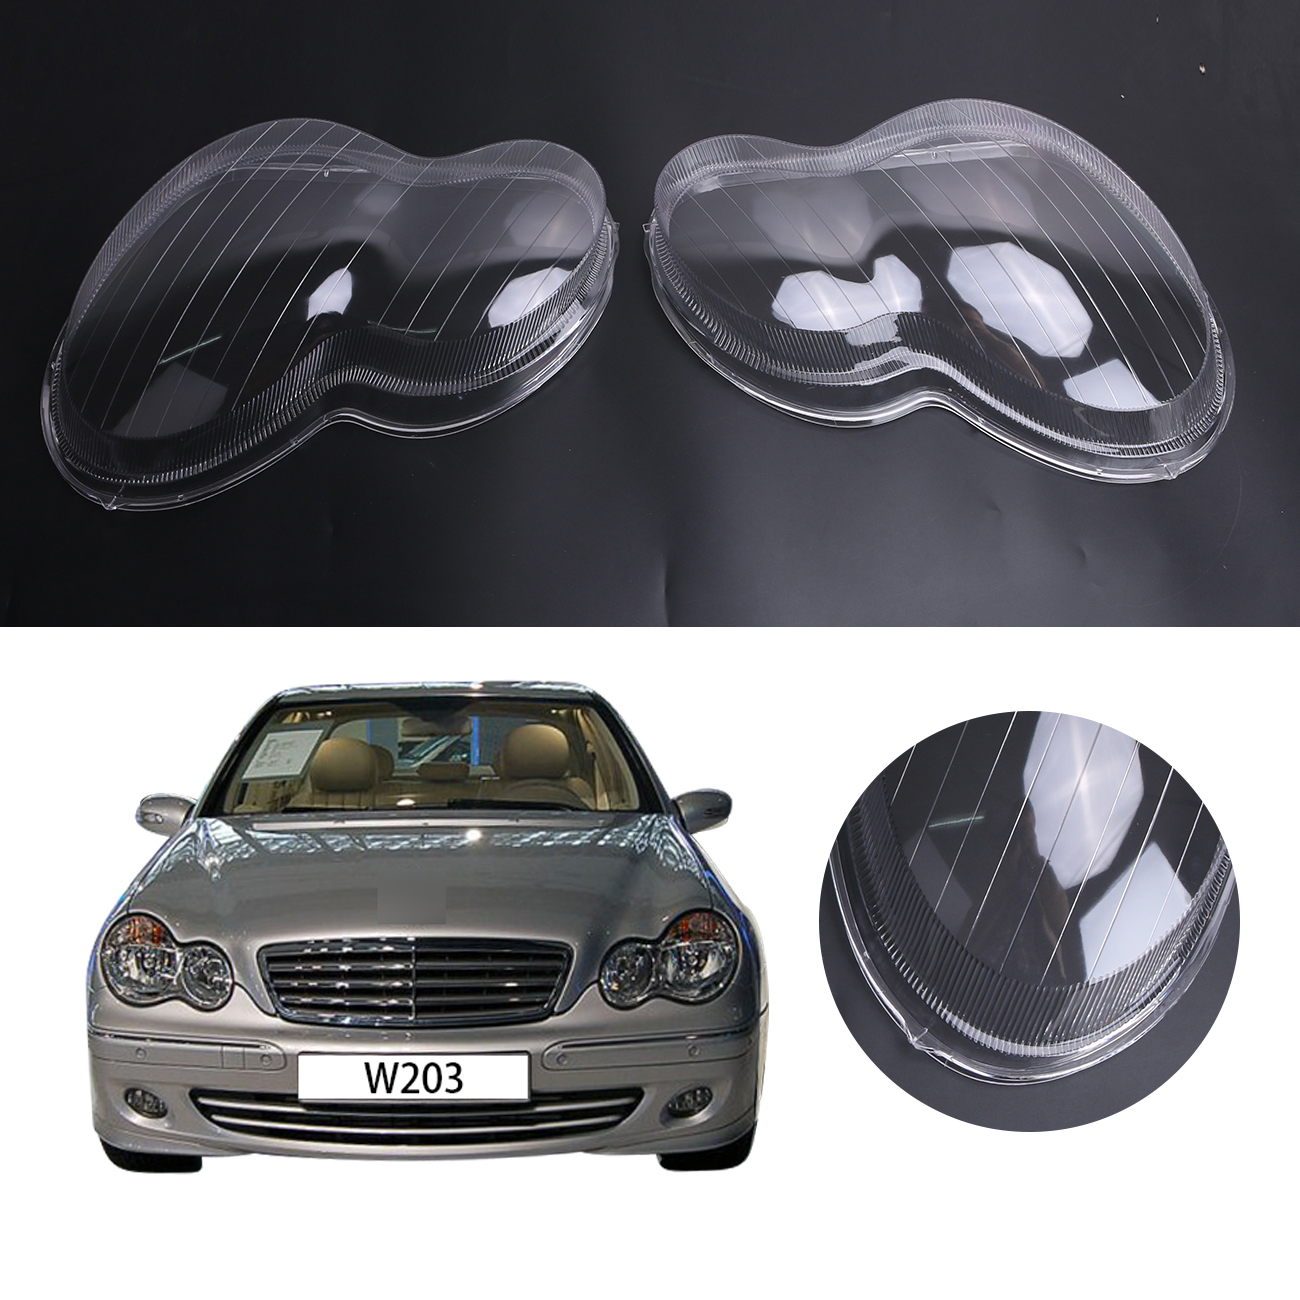 2x Transparent Housing Headlight Lens Shell Cover Lamp Assembly For Mercedes Benz W203 4-Door C230 C200 C240 2001-2007 #PD553 auto fuel filter 163 477 0201 163 477 0701 for mercedes benz